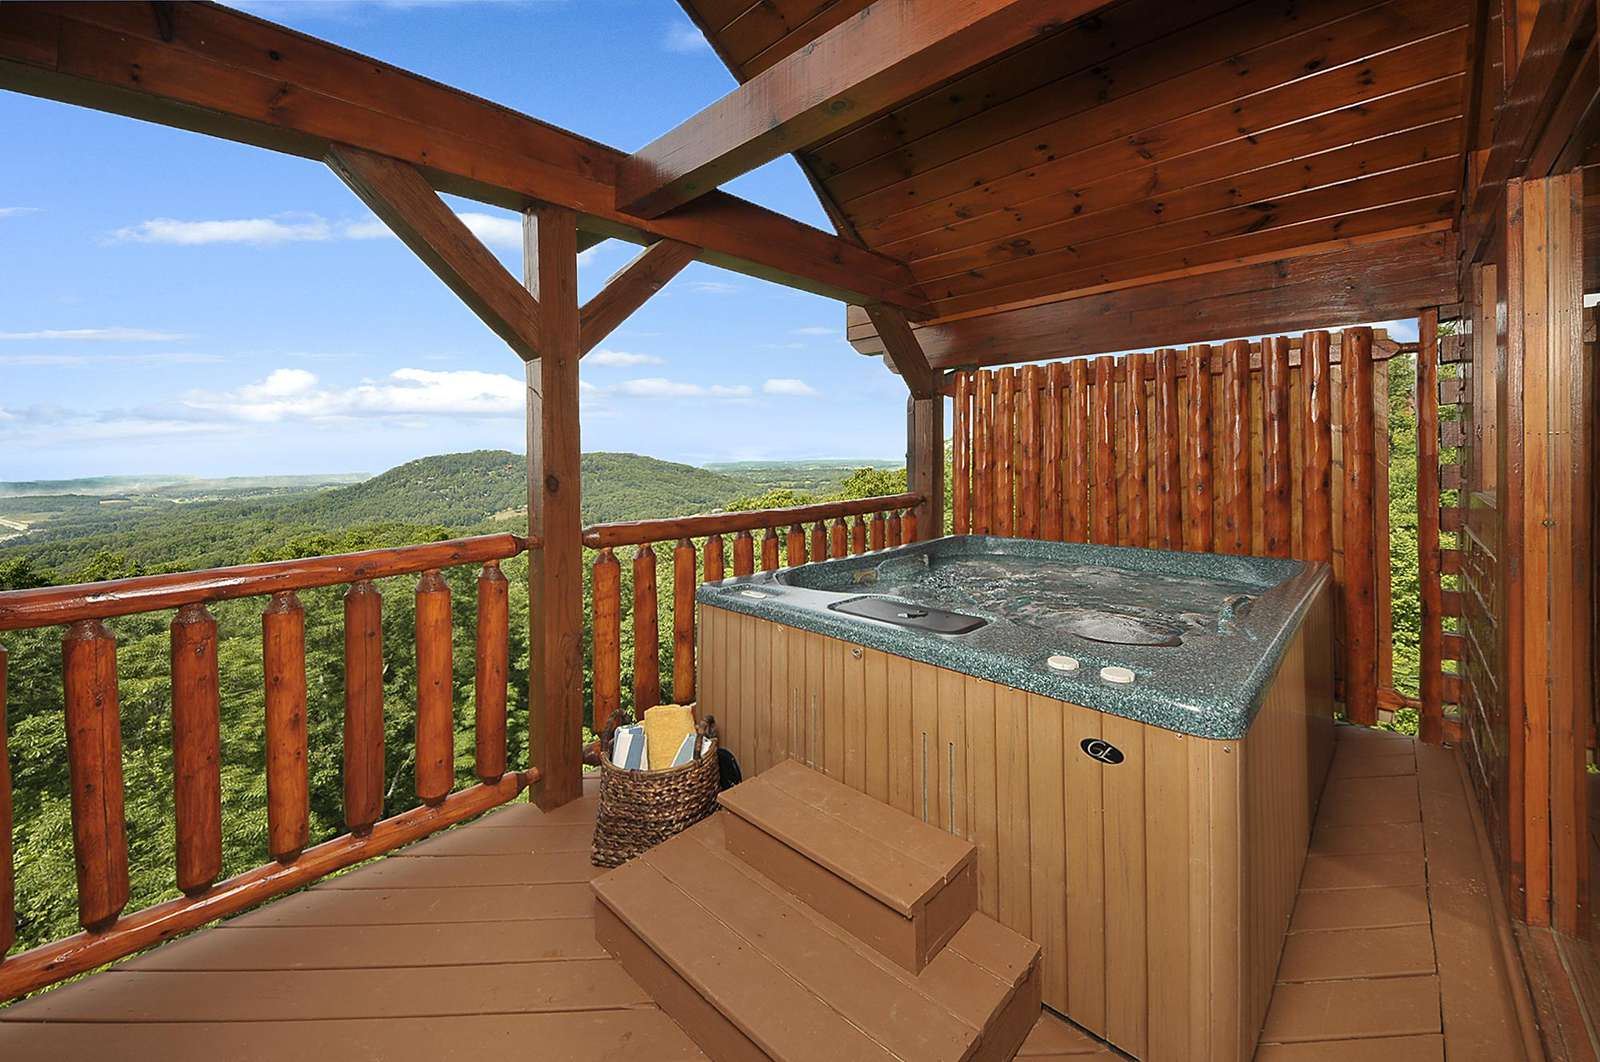 Hot Tub overlooking City & Mountain Views